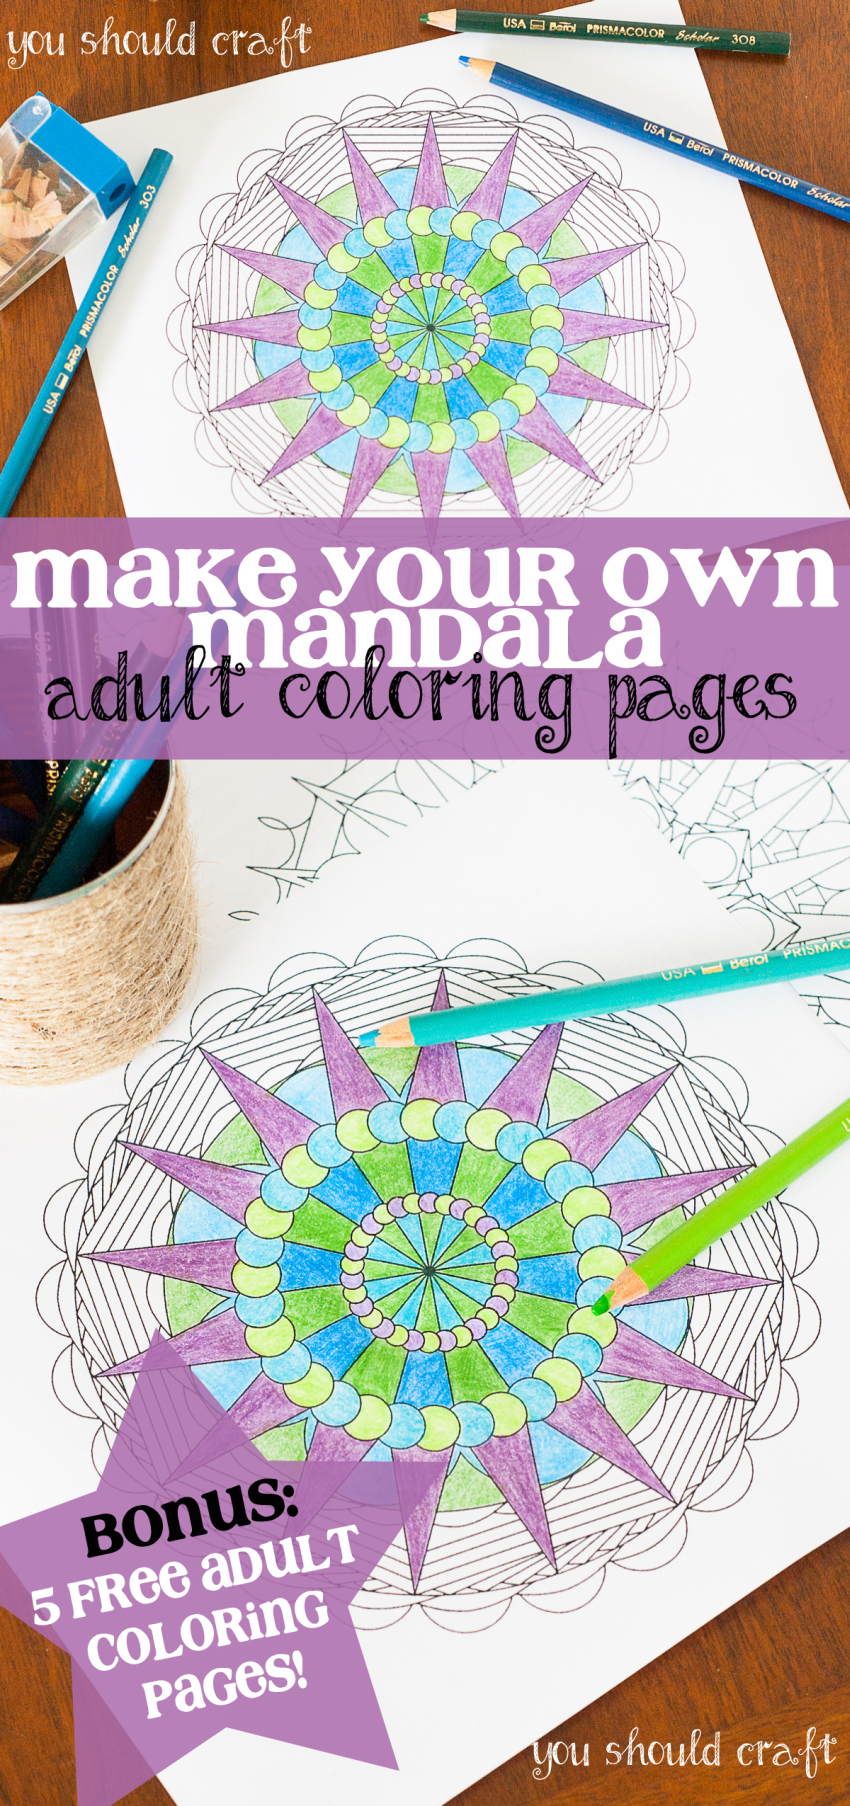 Create Your Own Mandala Adult Coloring Pages | You Should Craft